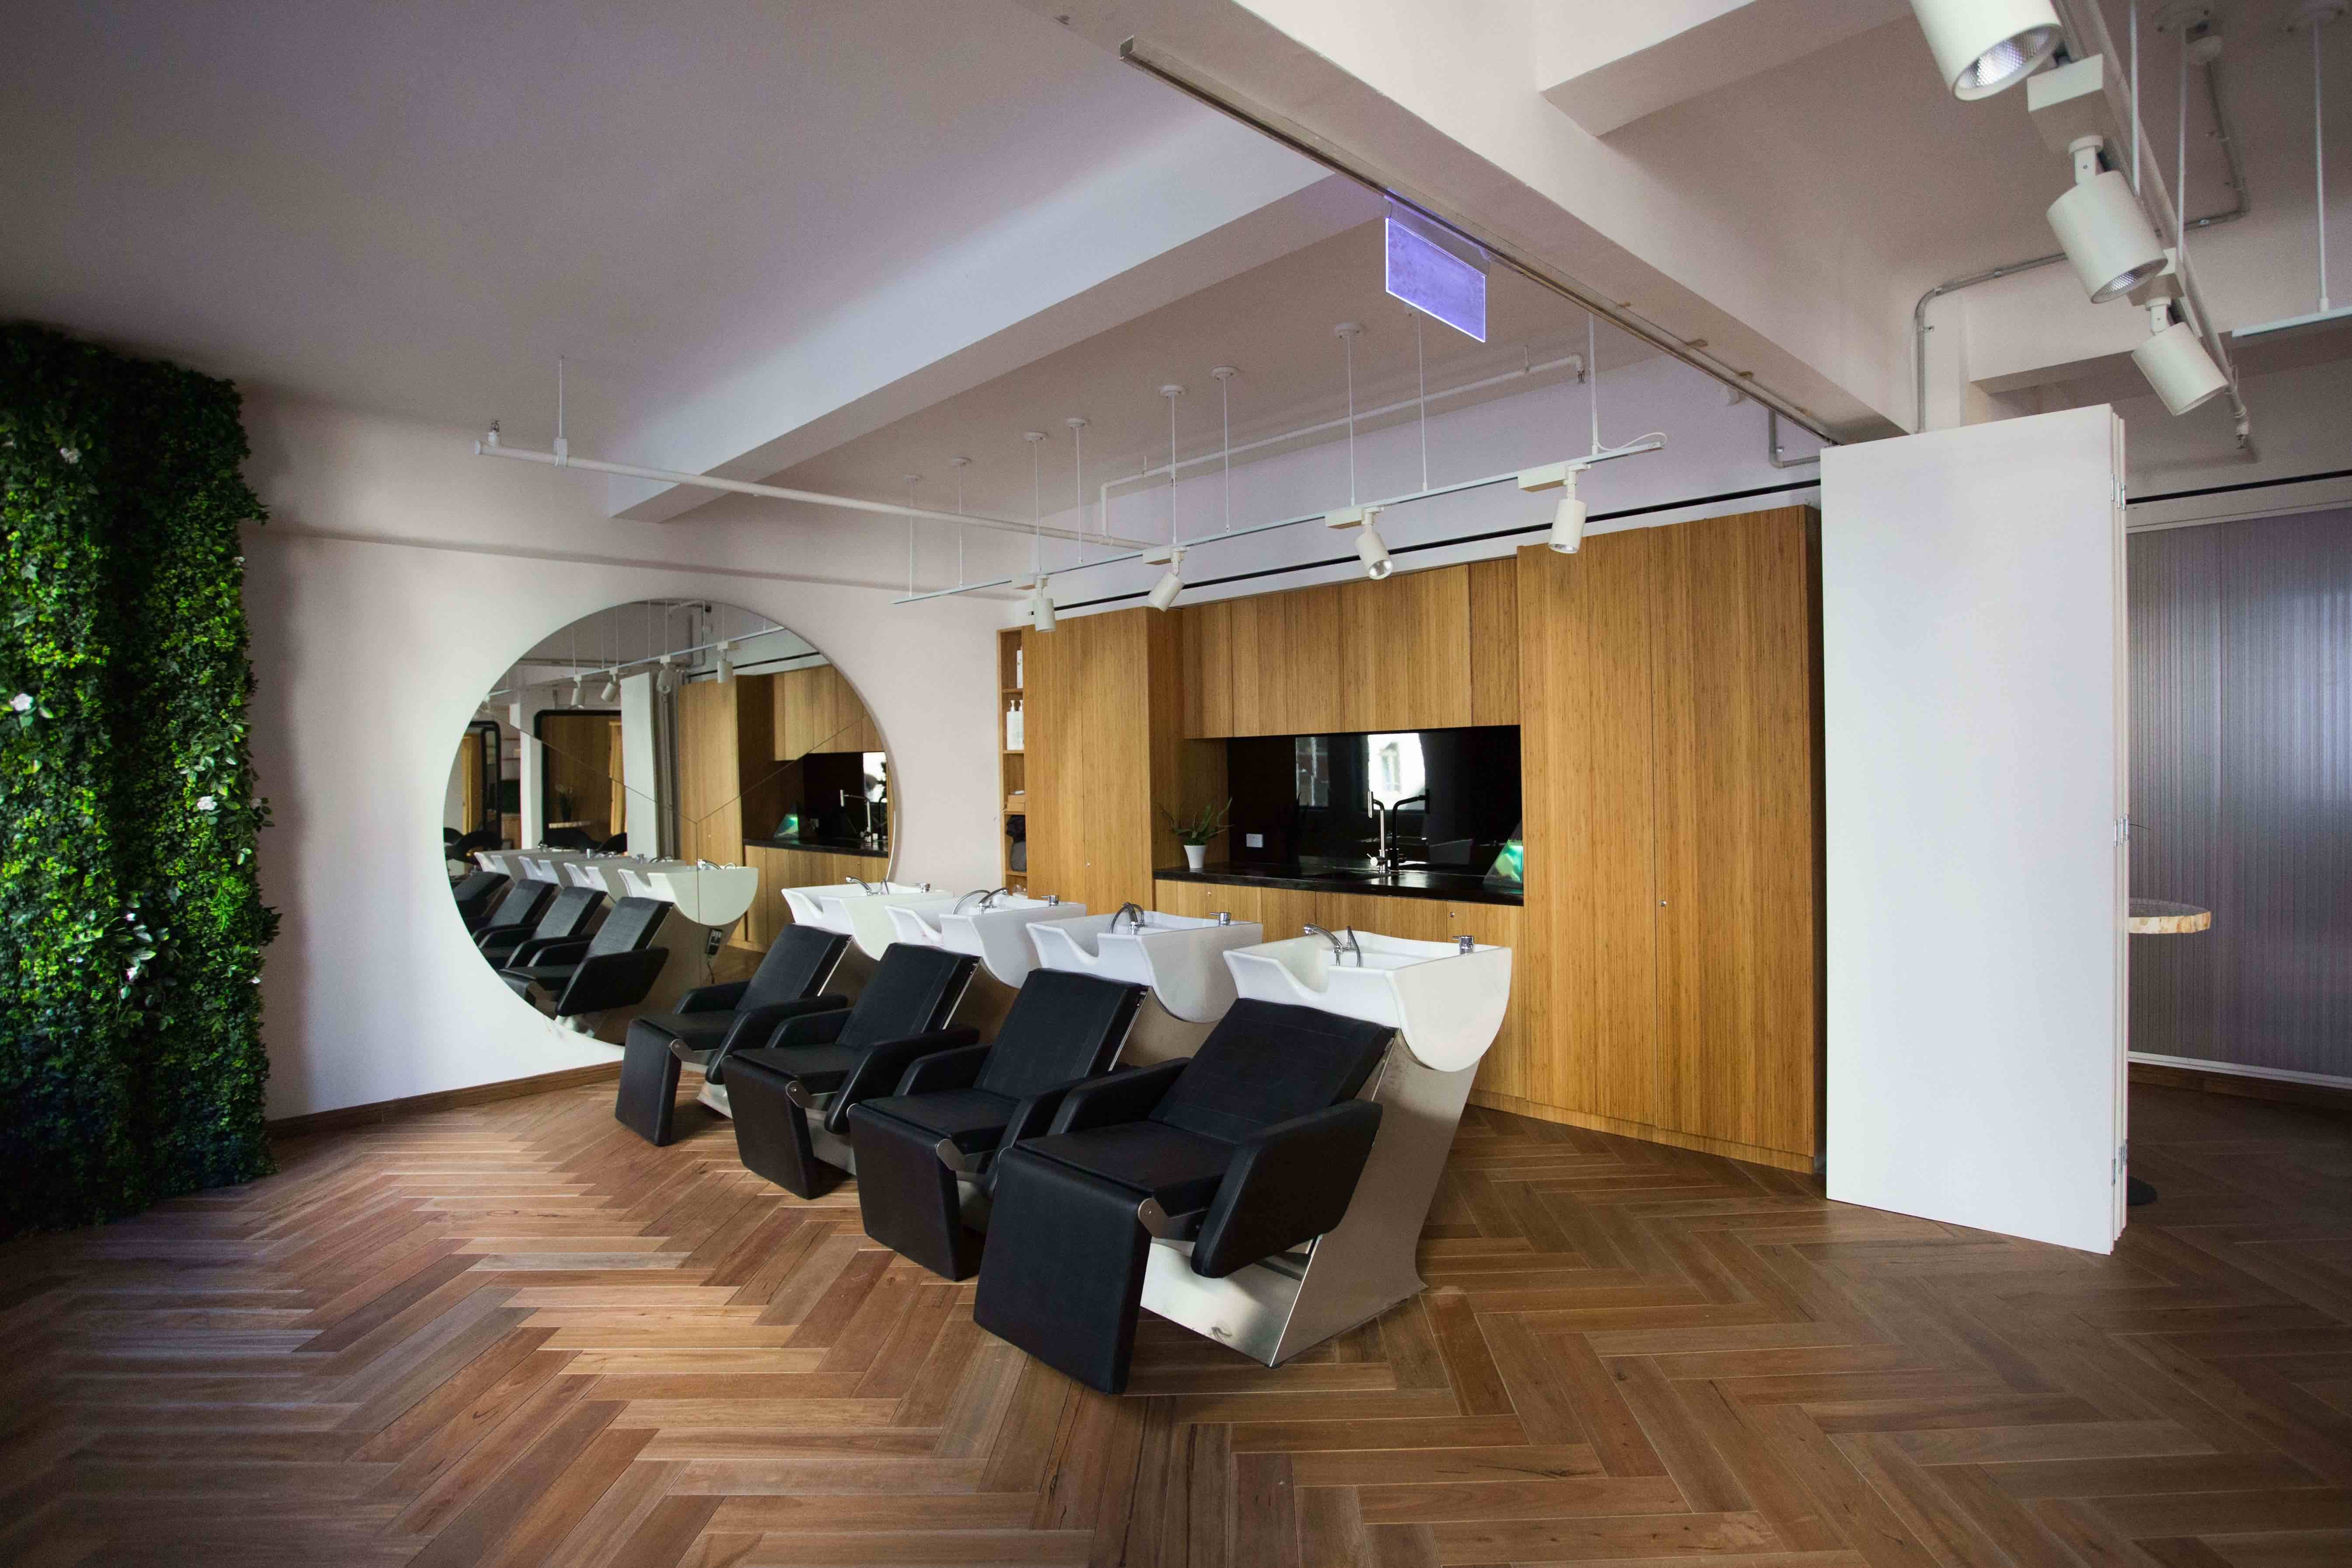 RENT A CHAIR HAIRDRESSING, multi-use area at House of TERRE A MER, image 7